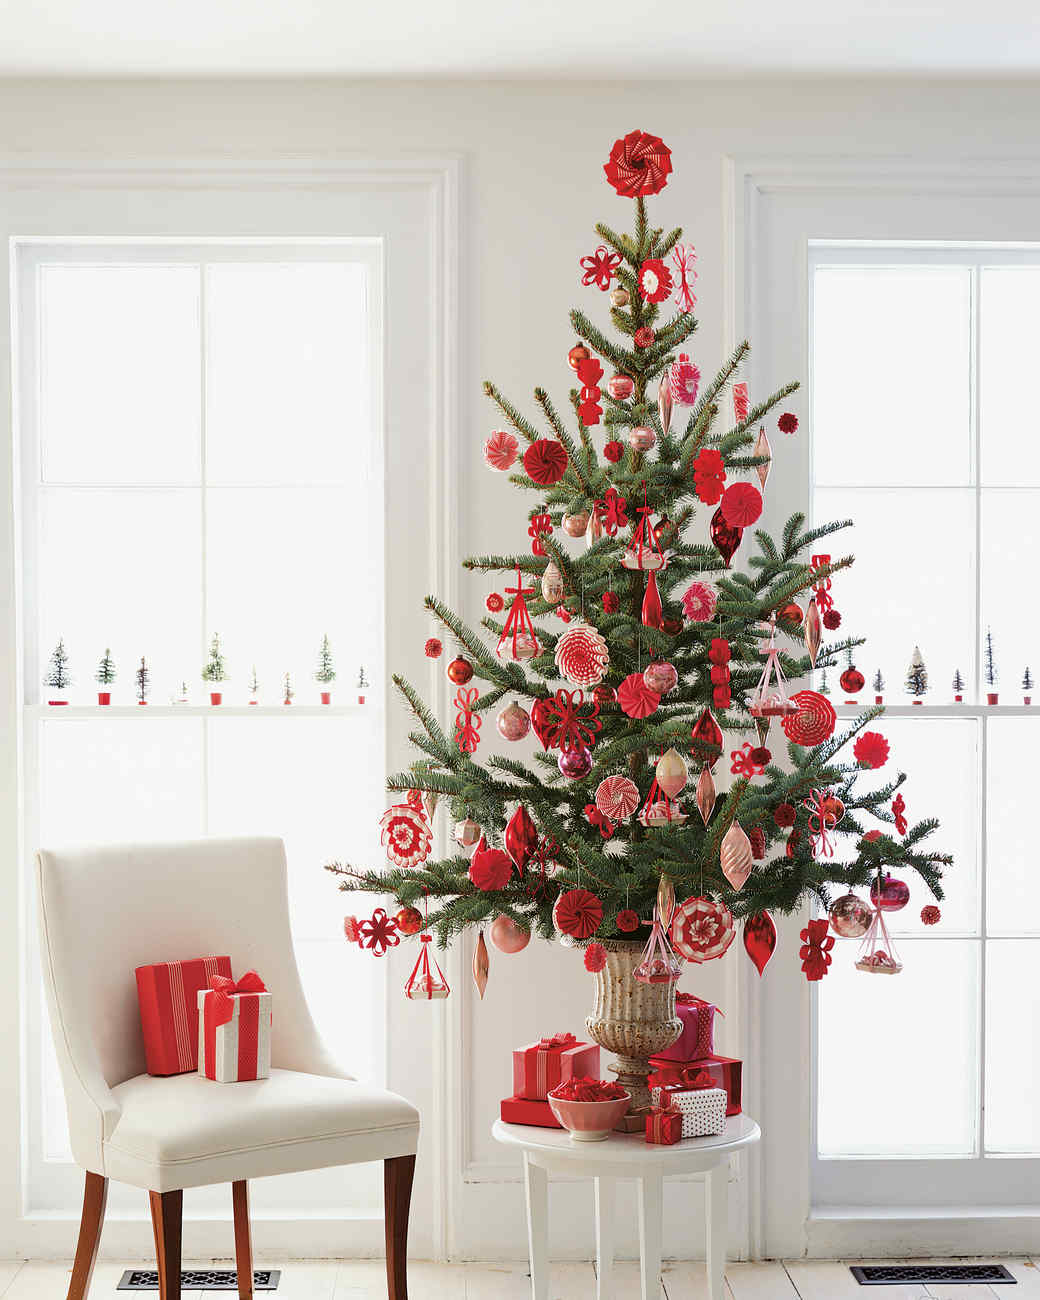 28 creative christmas tree decorating ideas martha stewart - Christmas Decoration Ideas To Make